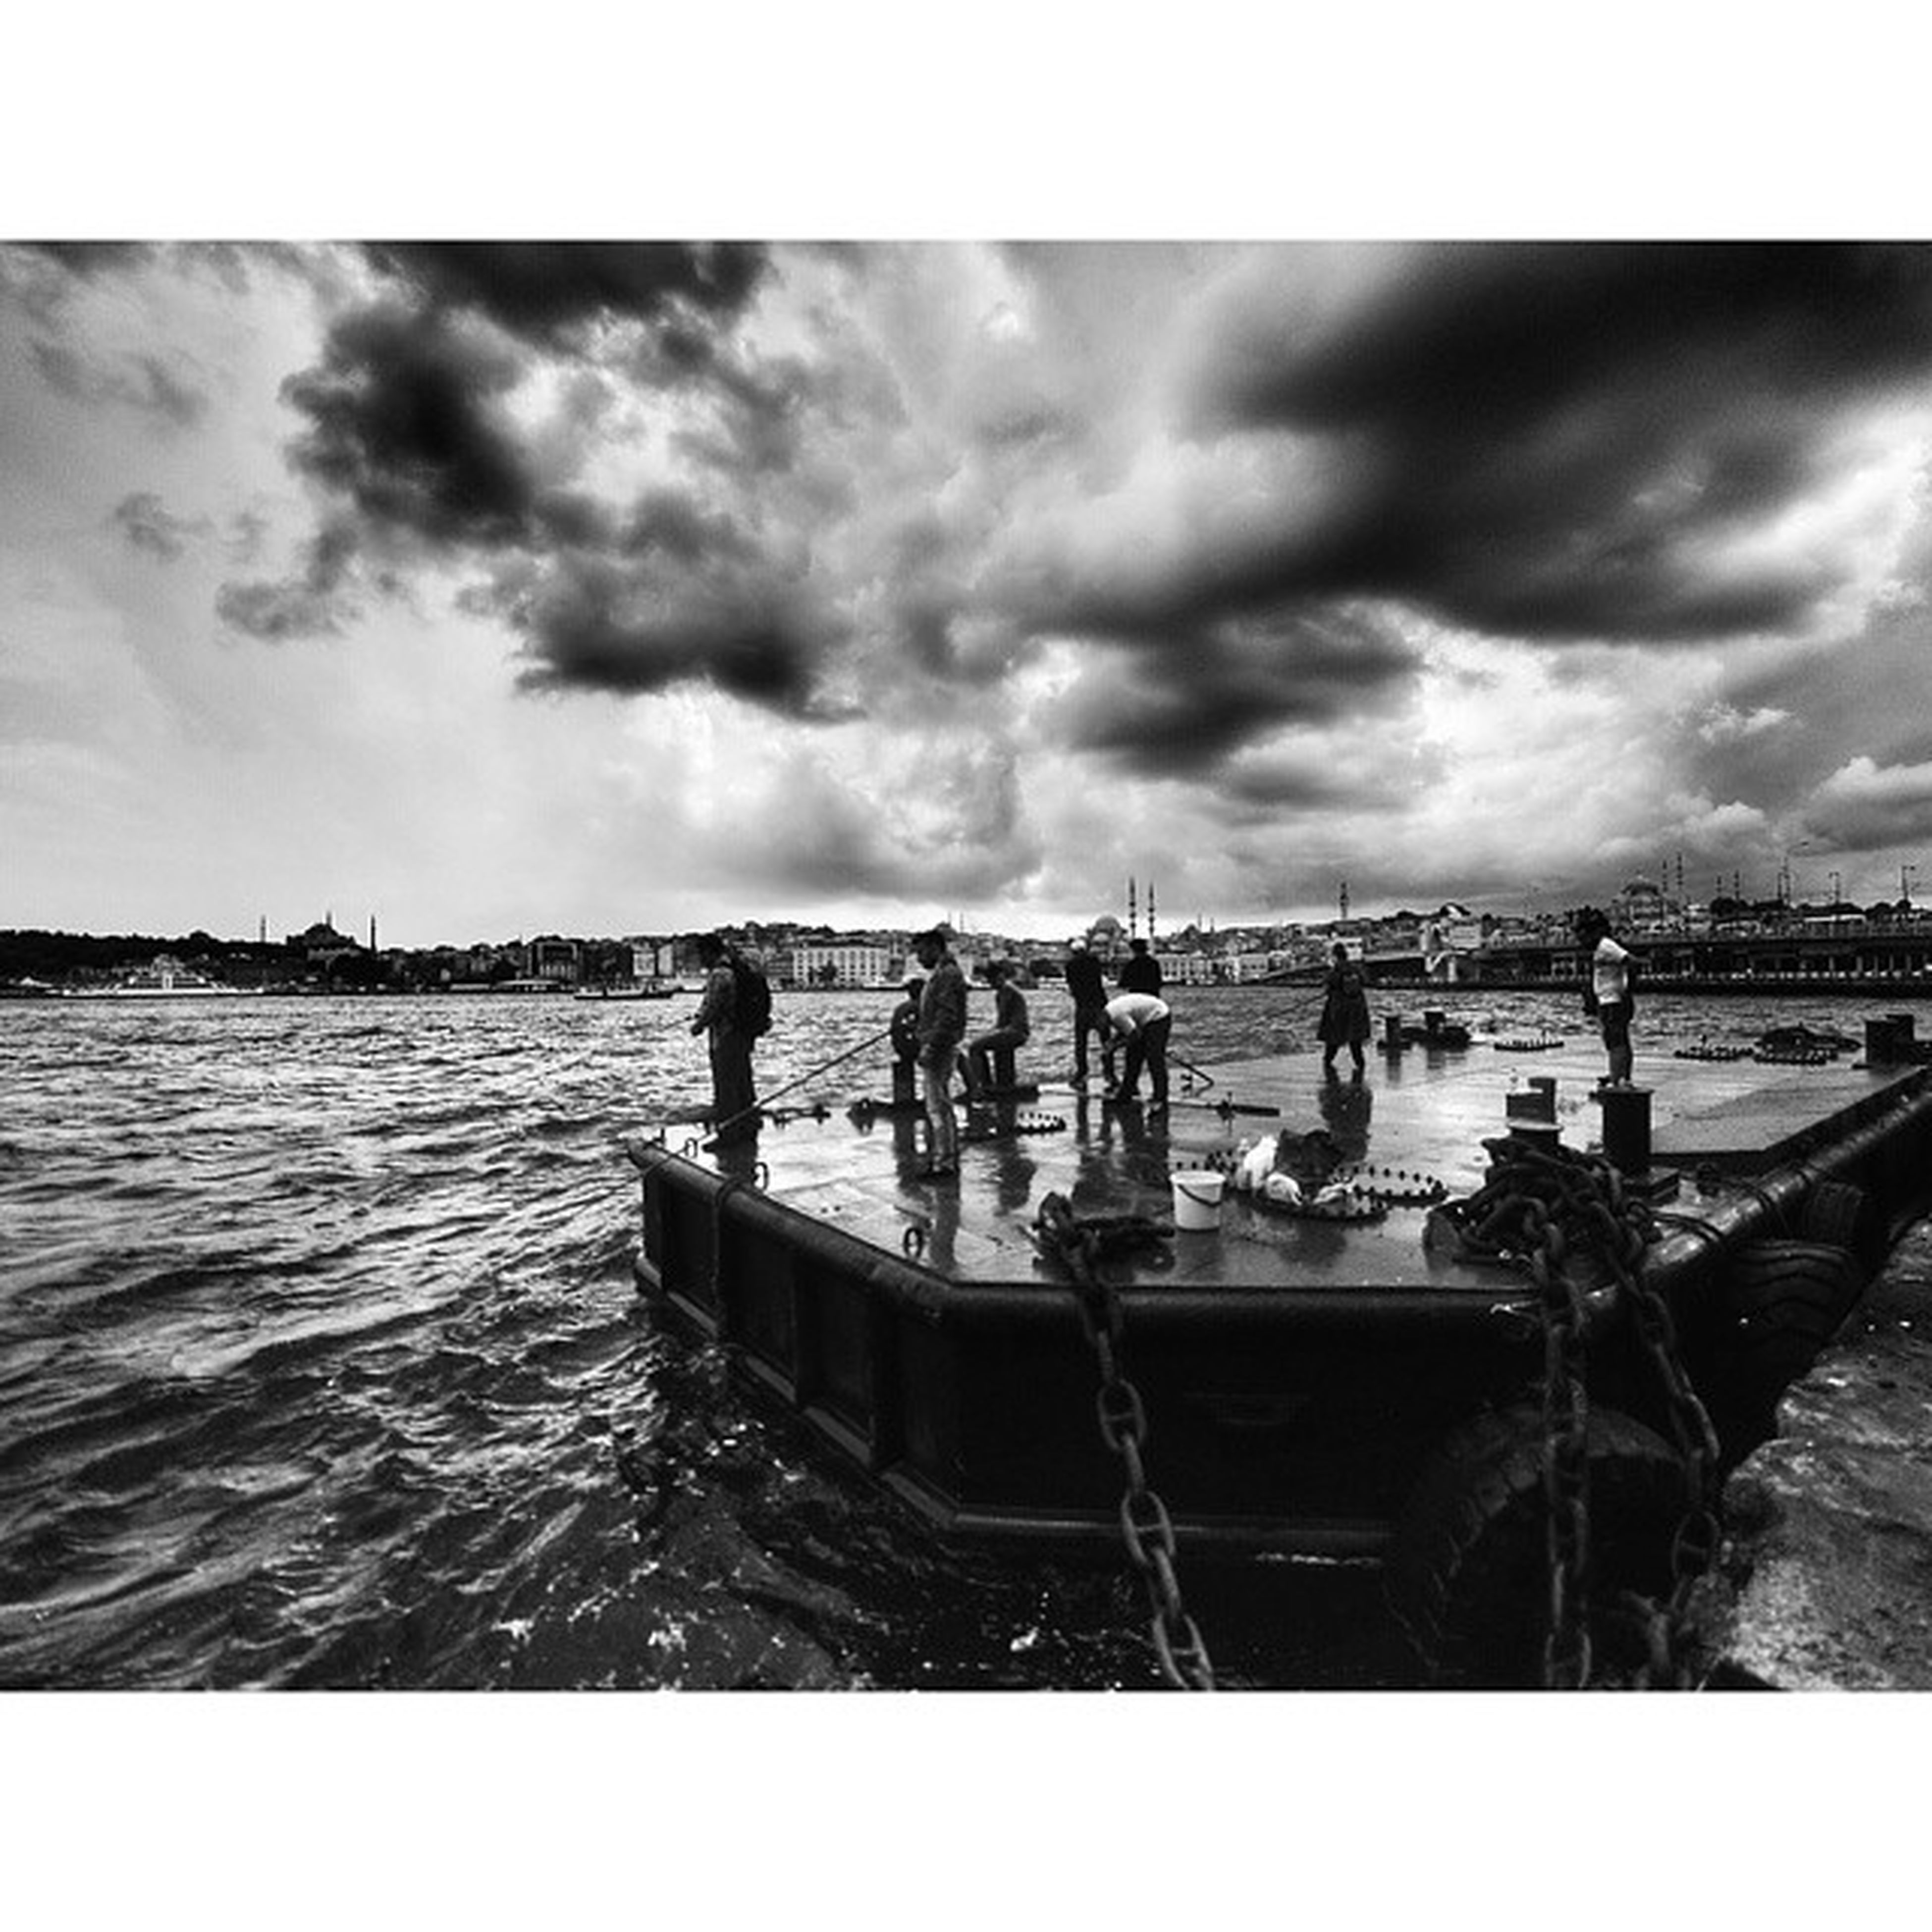 water, sky, cloud - sky, transfer print, sea, nautical vessel, cloudy, auto post production filter, transportation, boat, mode of transport, cloud, overcast, moored, men, nature, weather, waterfront, day